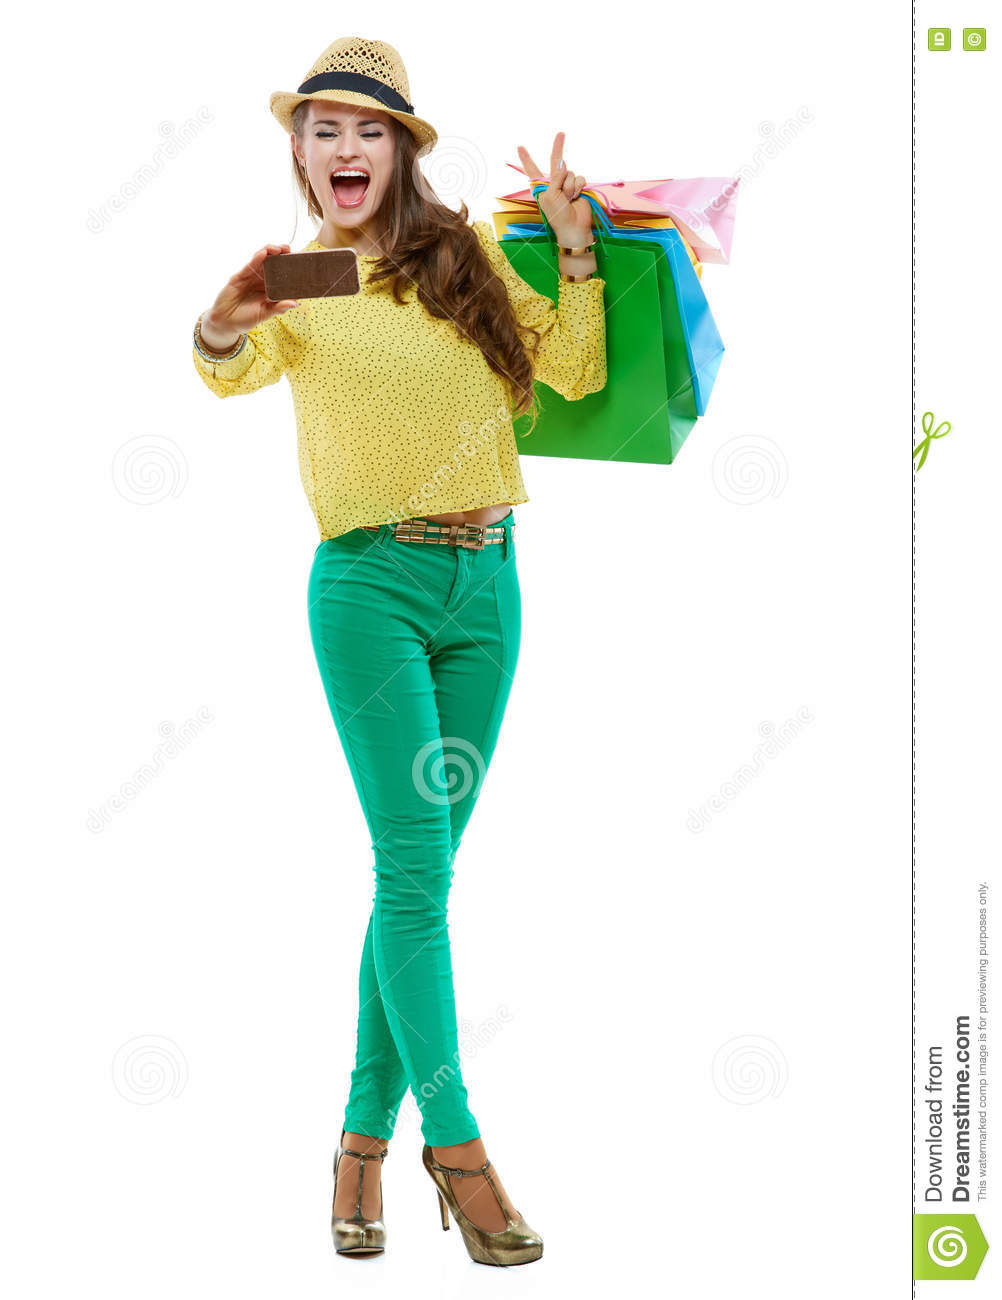 Woman with shopping bags showing victory and taking selfie